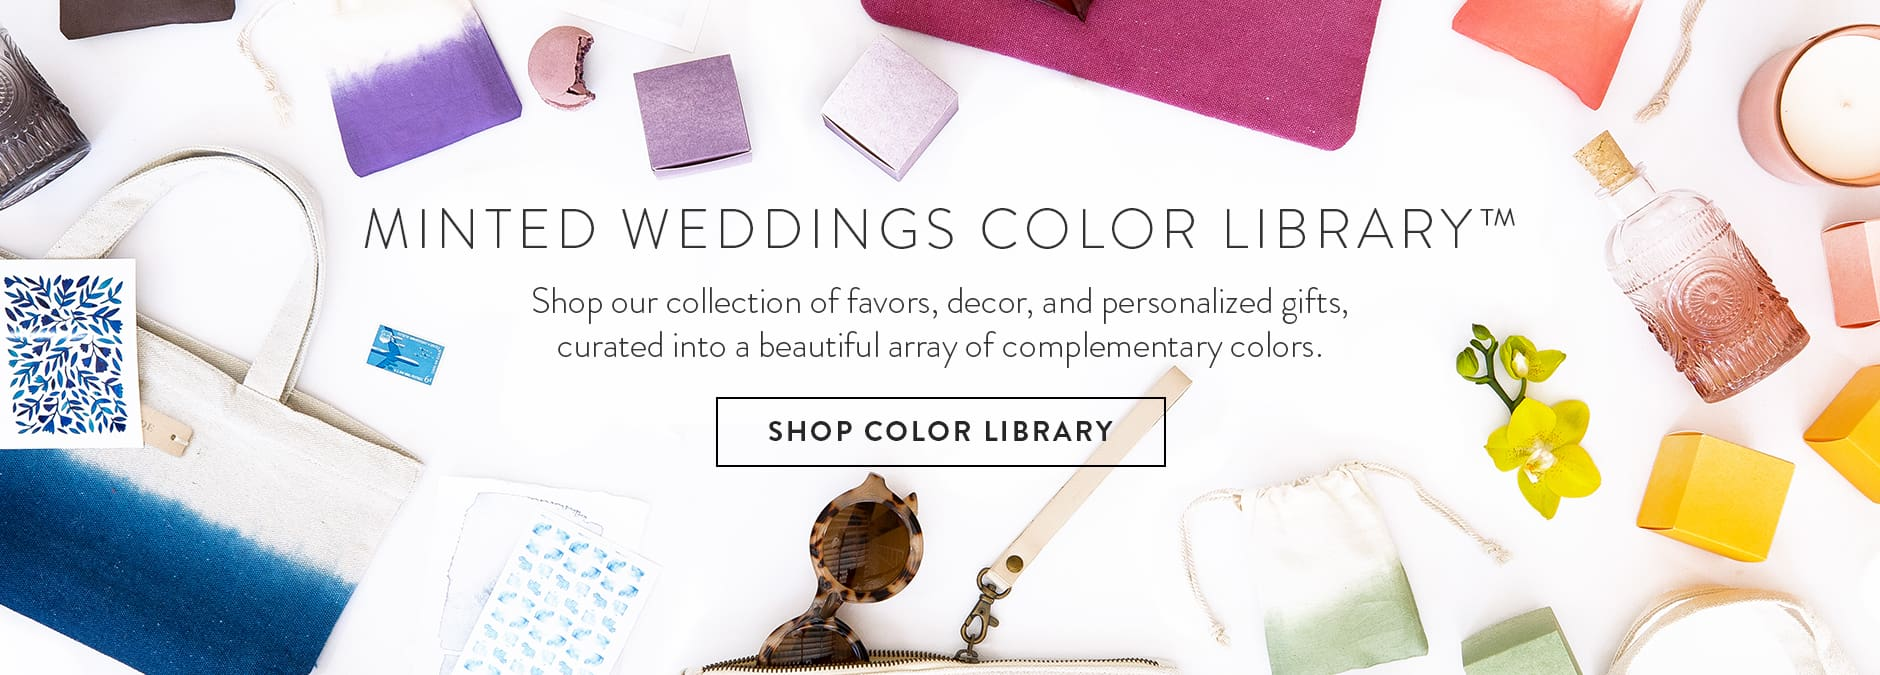 Minted Weddings Color Library